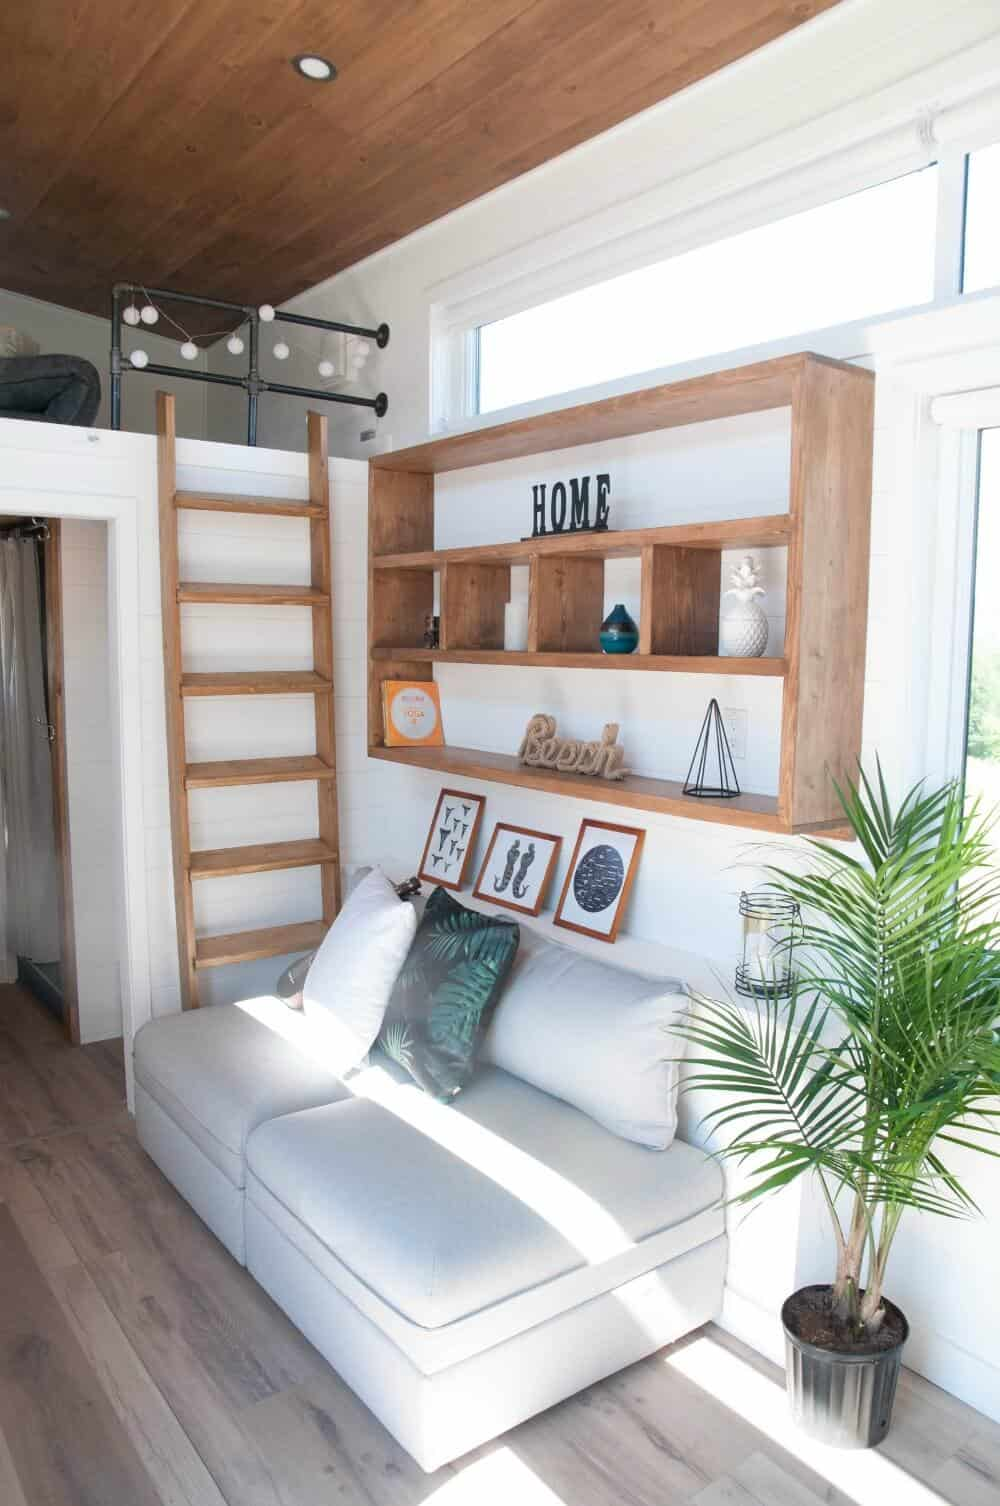 9 adorable tiny homes for sale you can buy right now - The Wayward Home